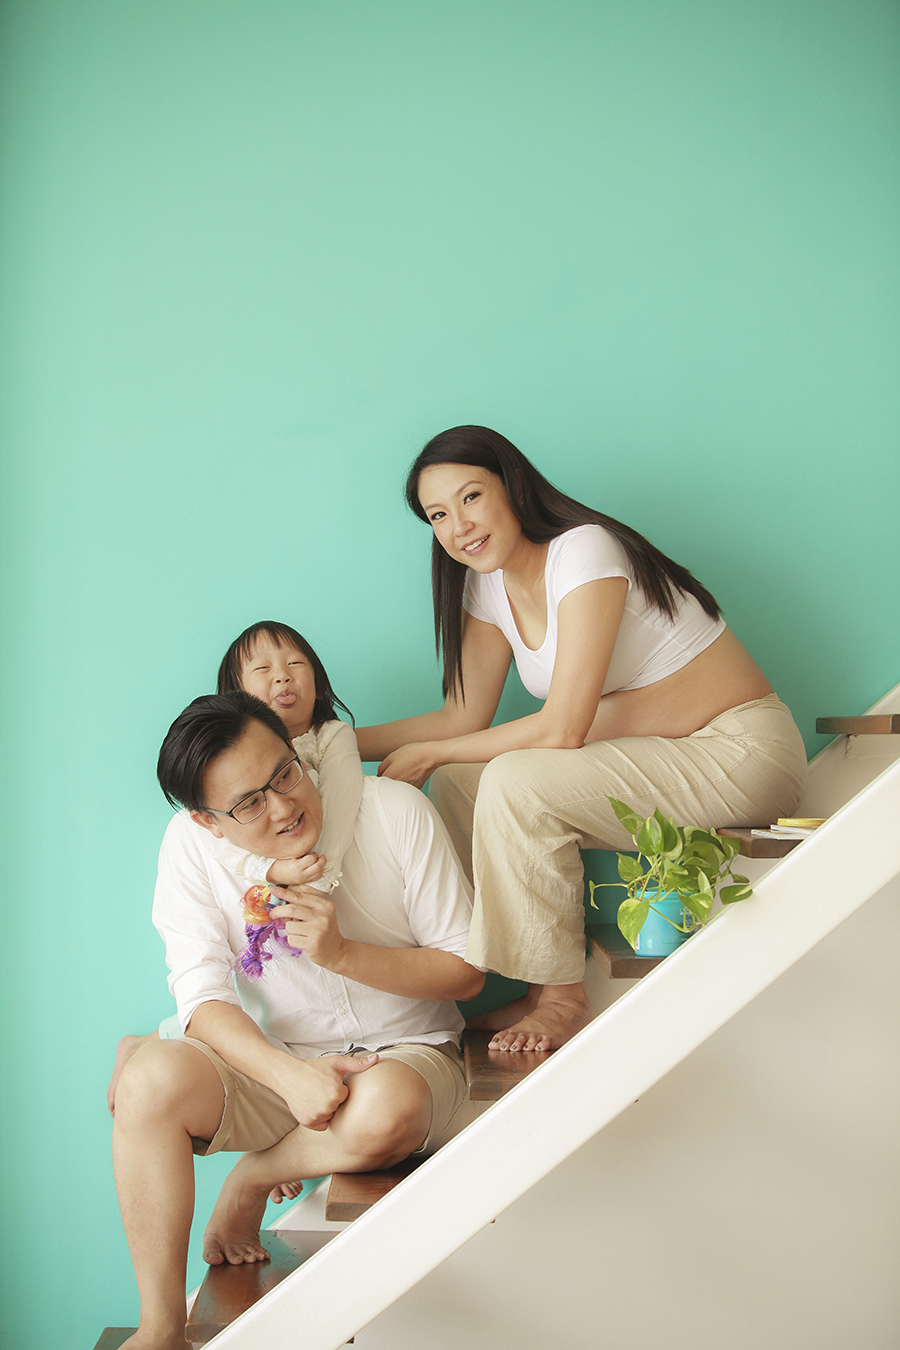 maternity + family portrait photography by kurt ahs . 9131.jpg